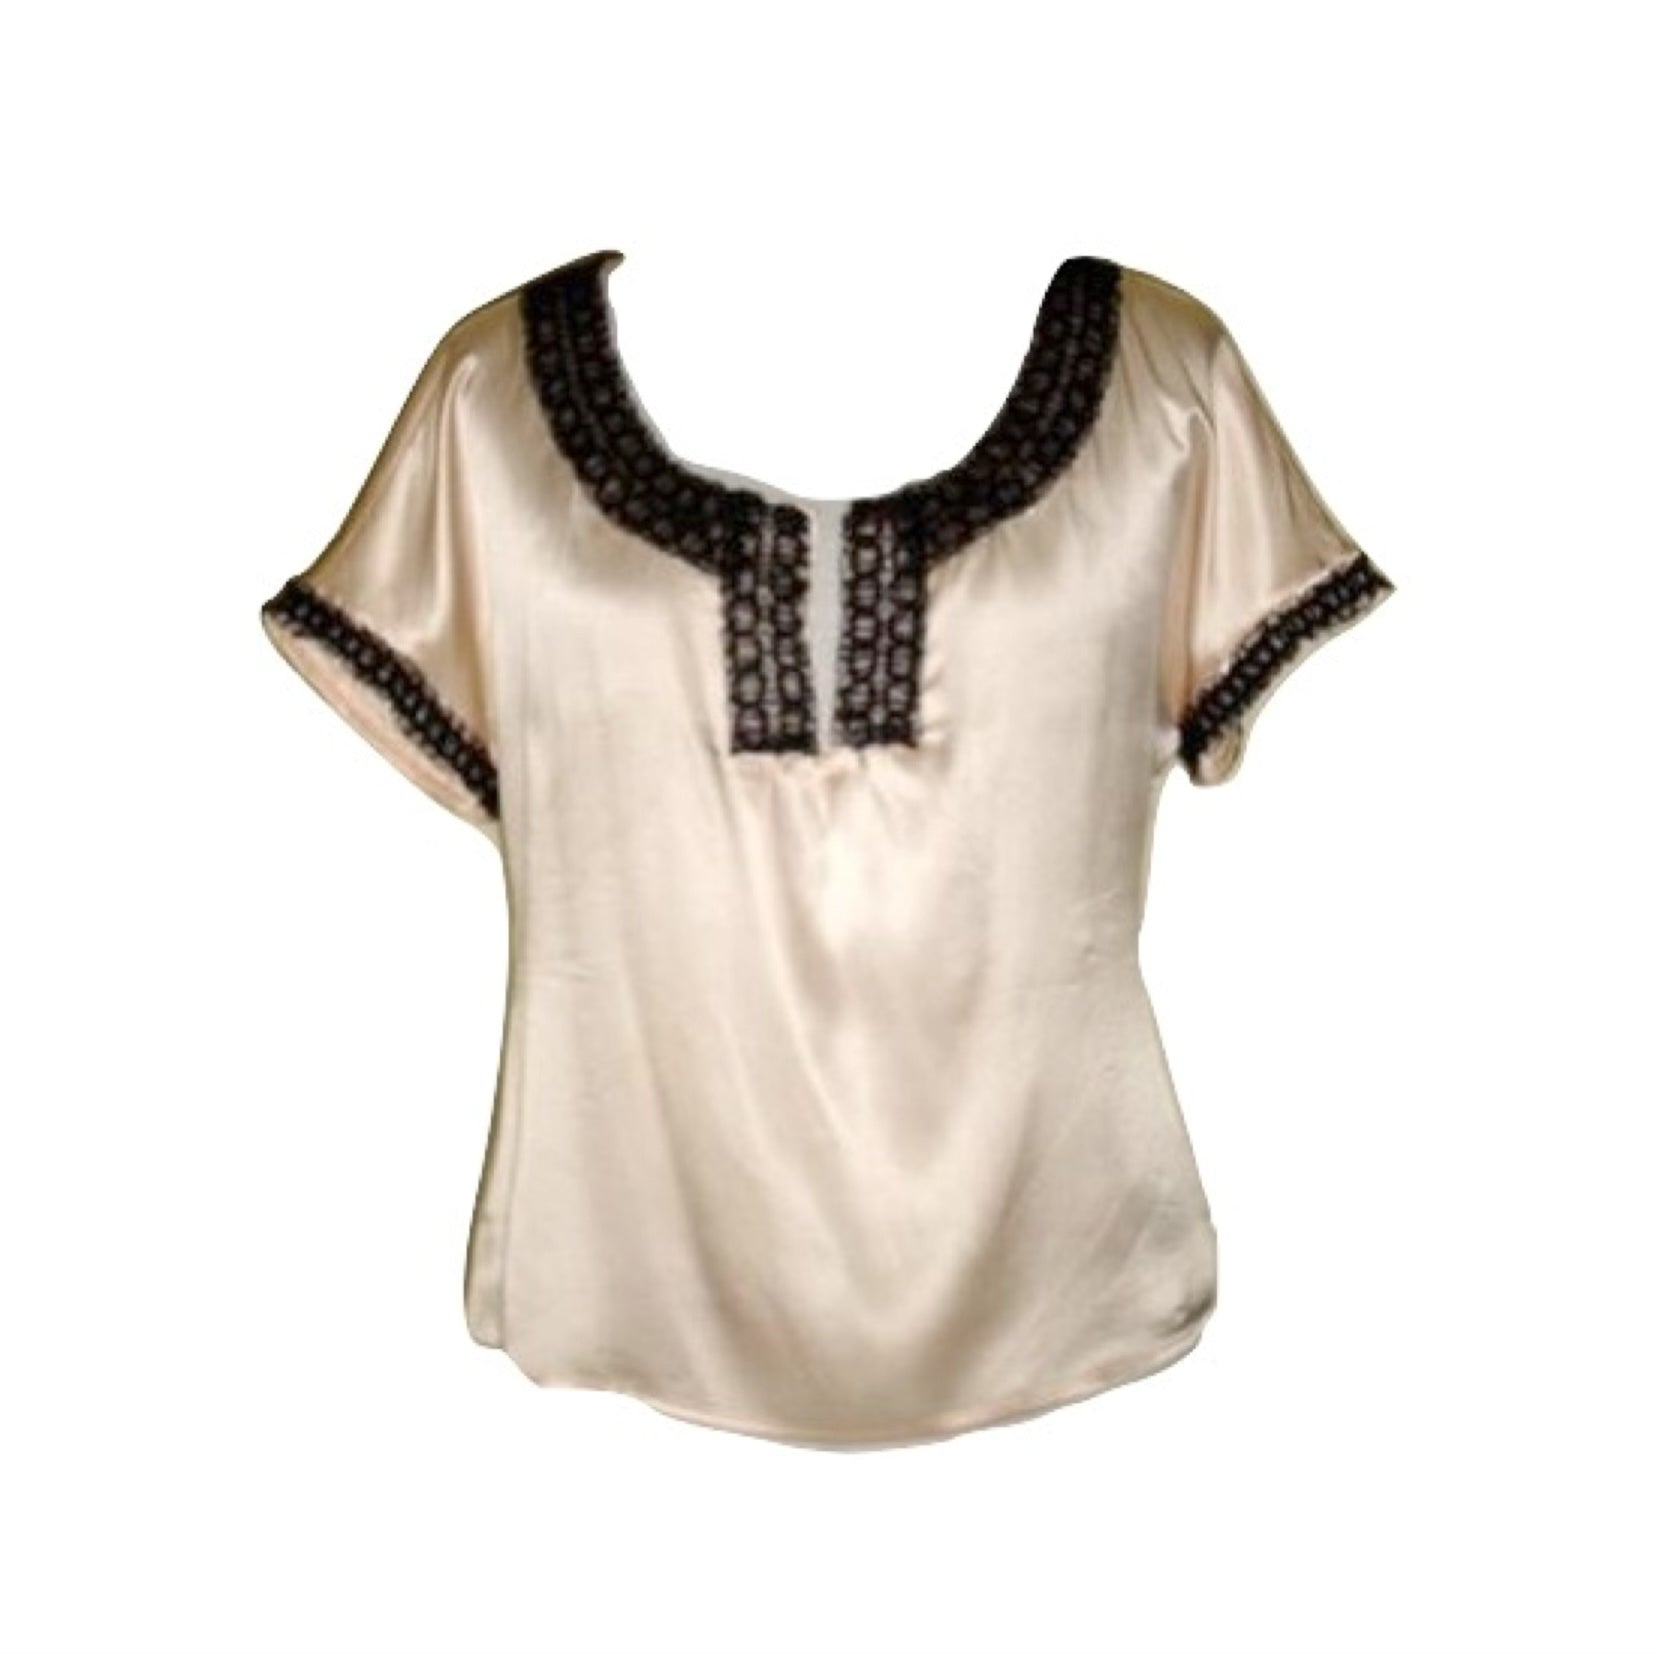 PARAMETER CREAM SILK TOP W/ BLACK CHIFFON MEDIUM 100% SILK